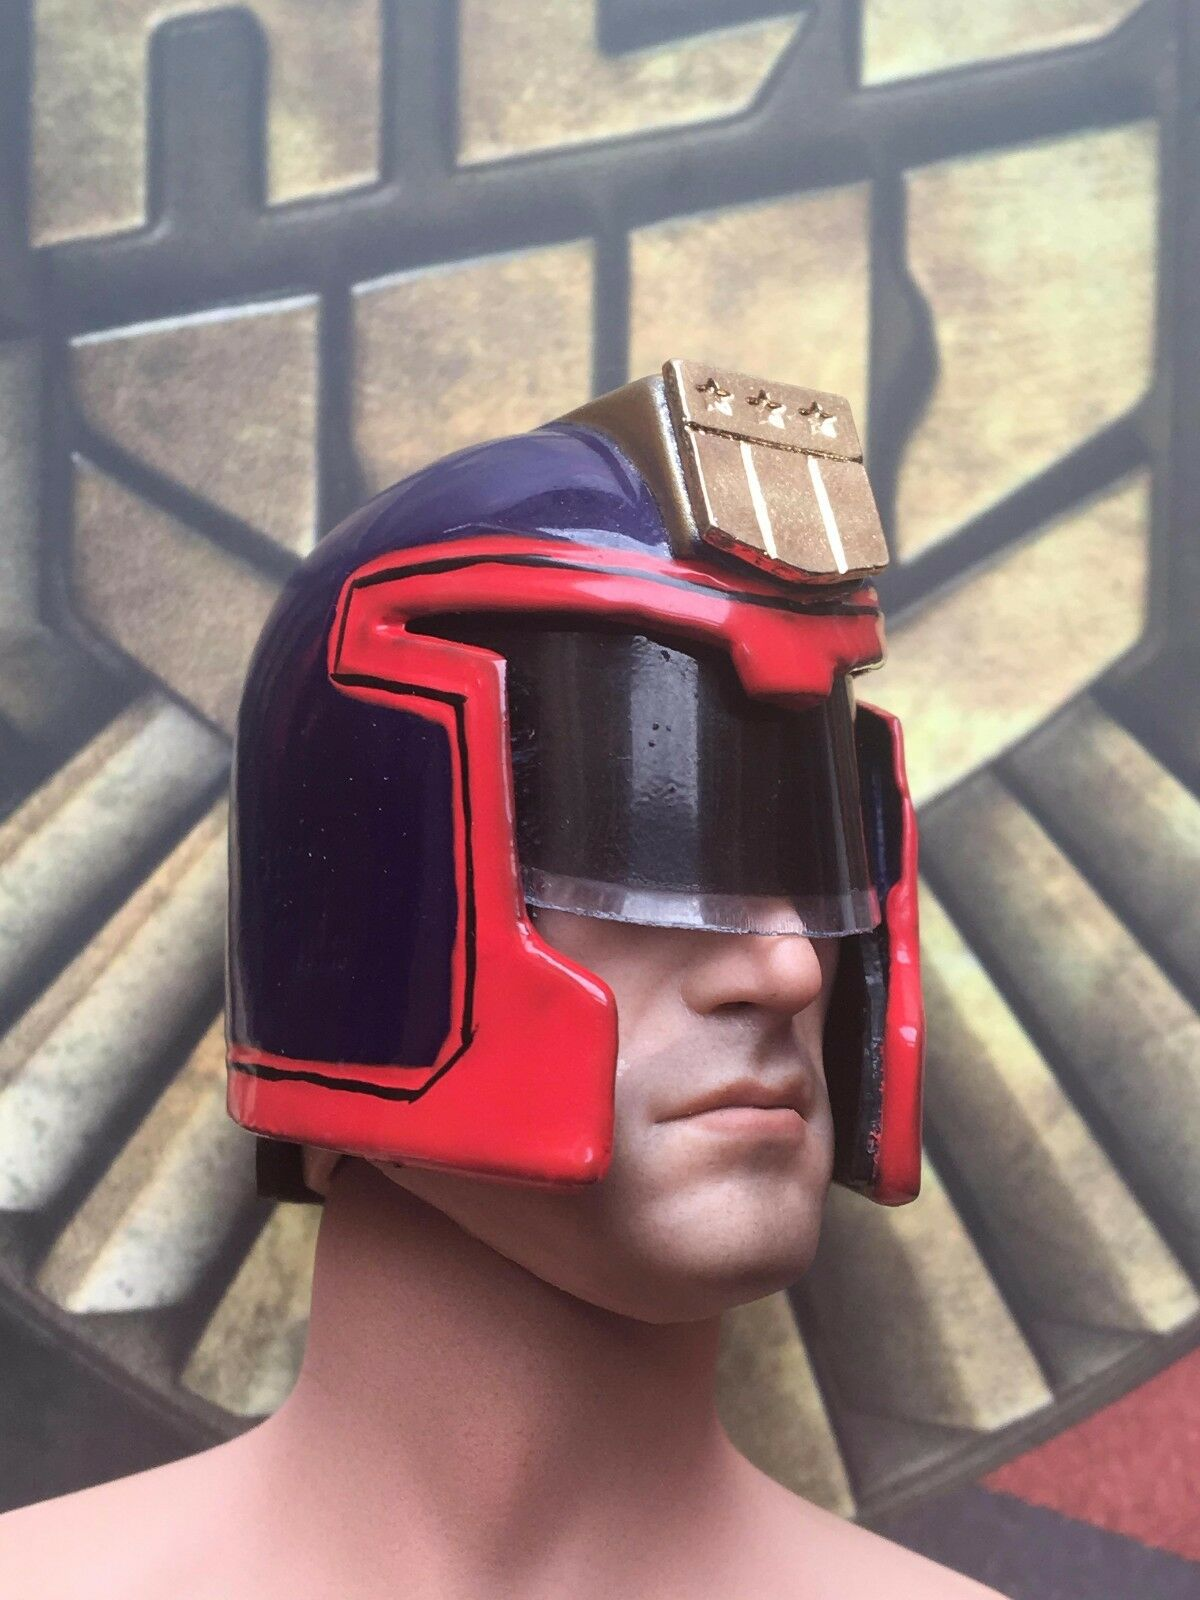 Xensation judge drotd 1995 metall helmeted sculpt sly stallone locker 1   6 - skala